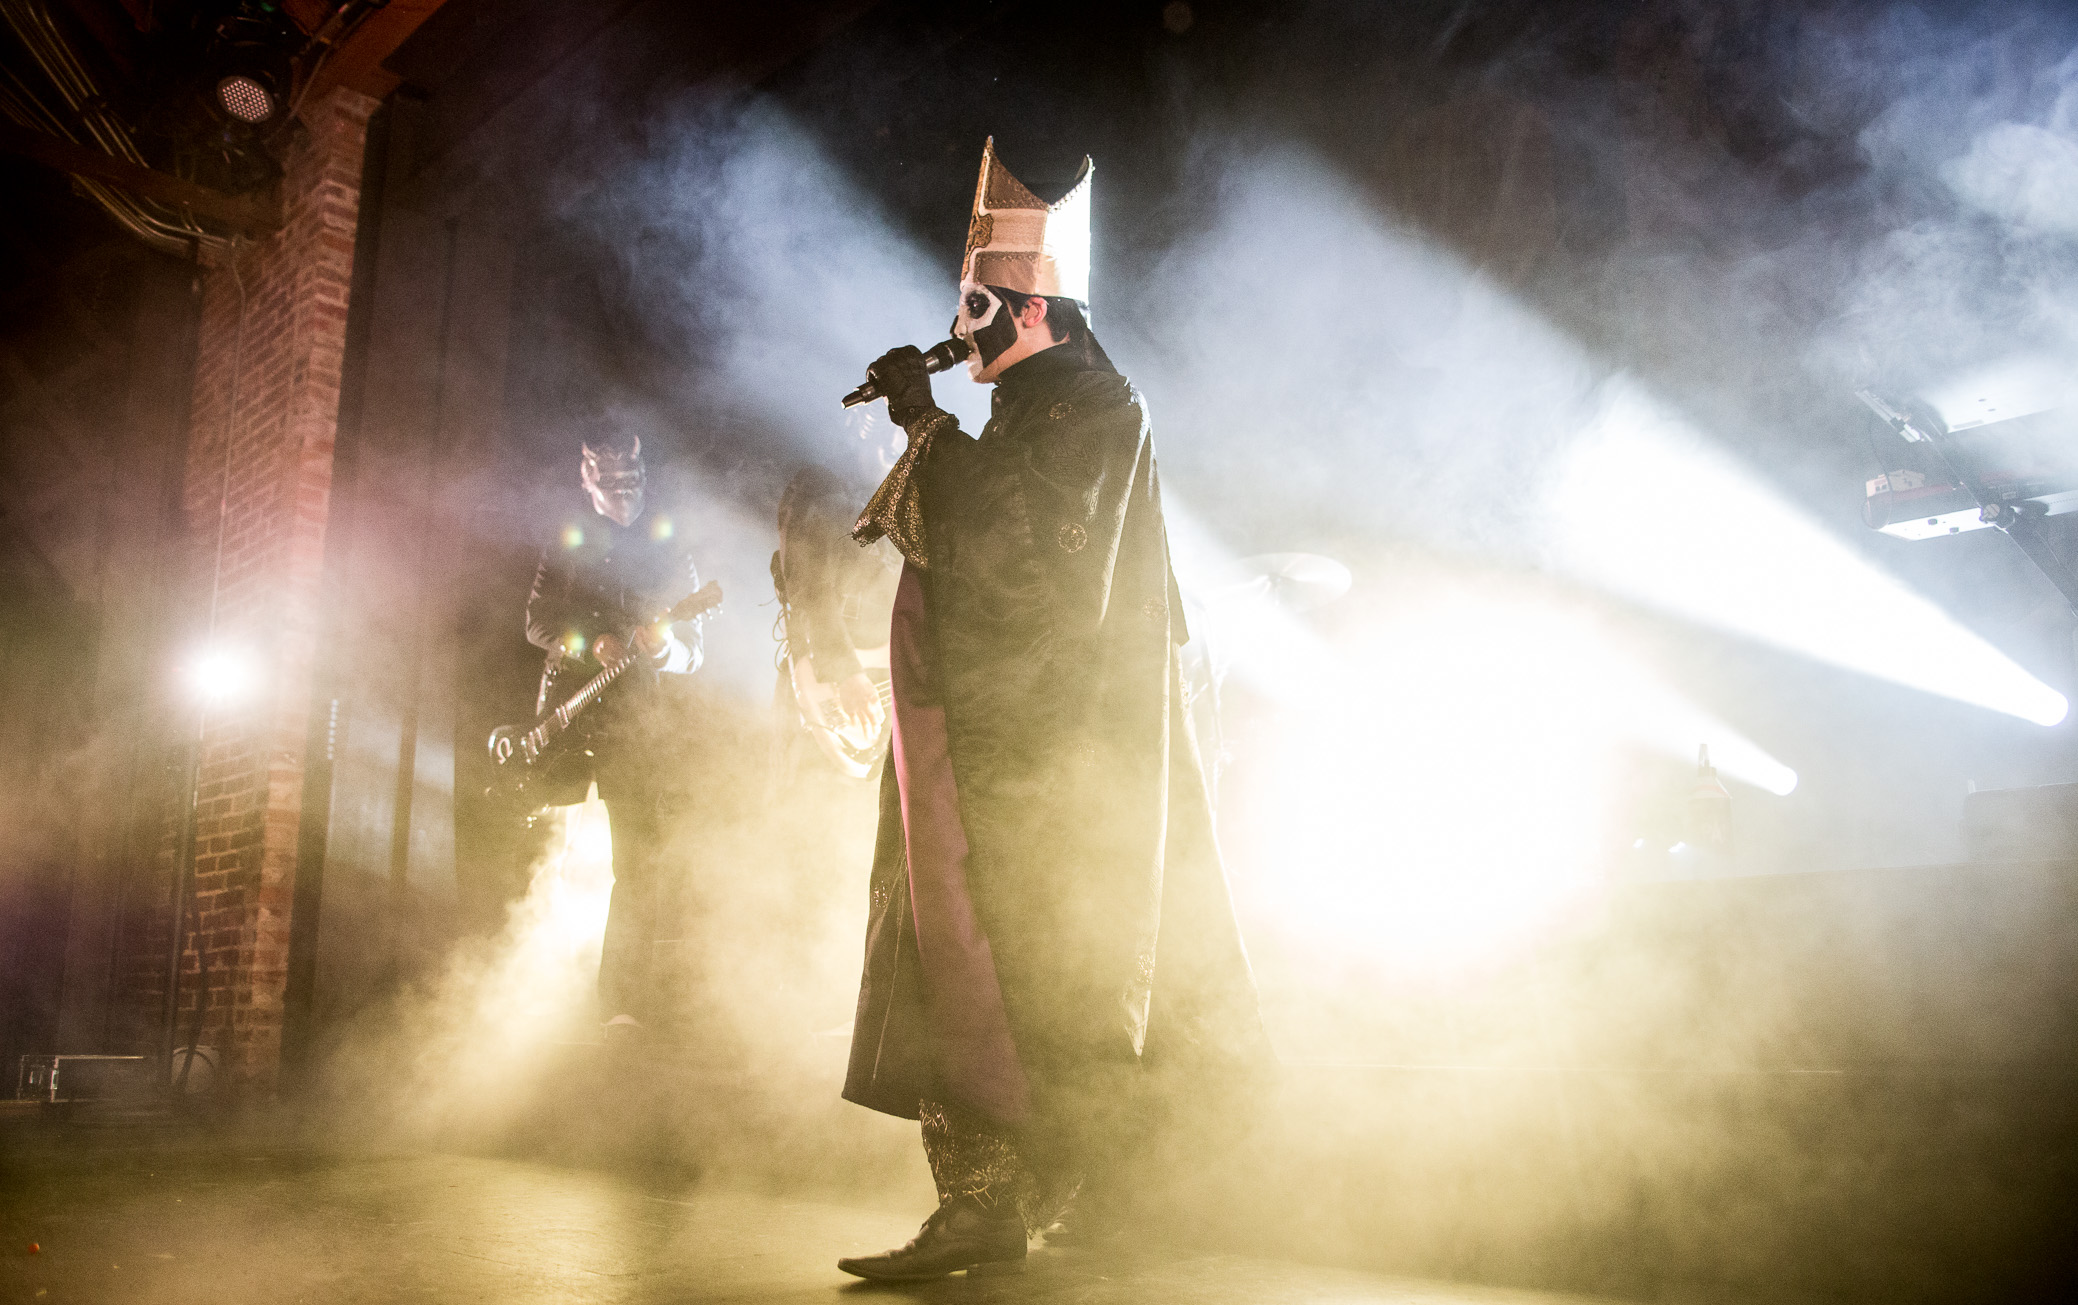 Ghost performs at Iron City in Birmingham, Alabama on May 2nd, 2016.   (Photo by David A. Smith/DSmithScenes)